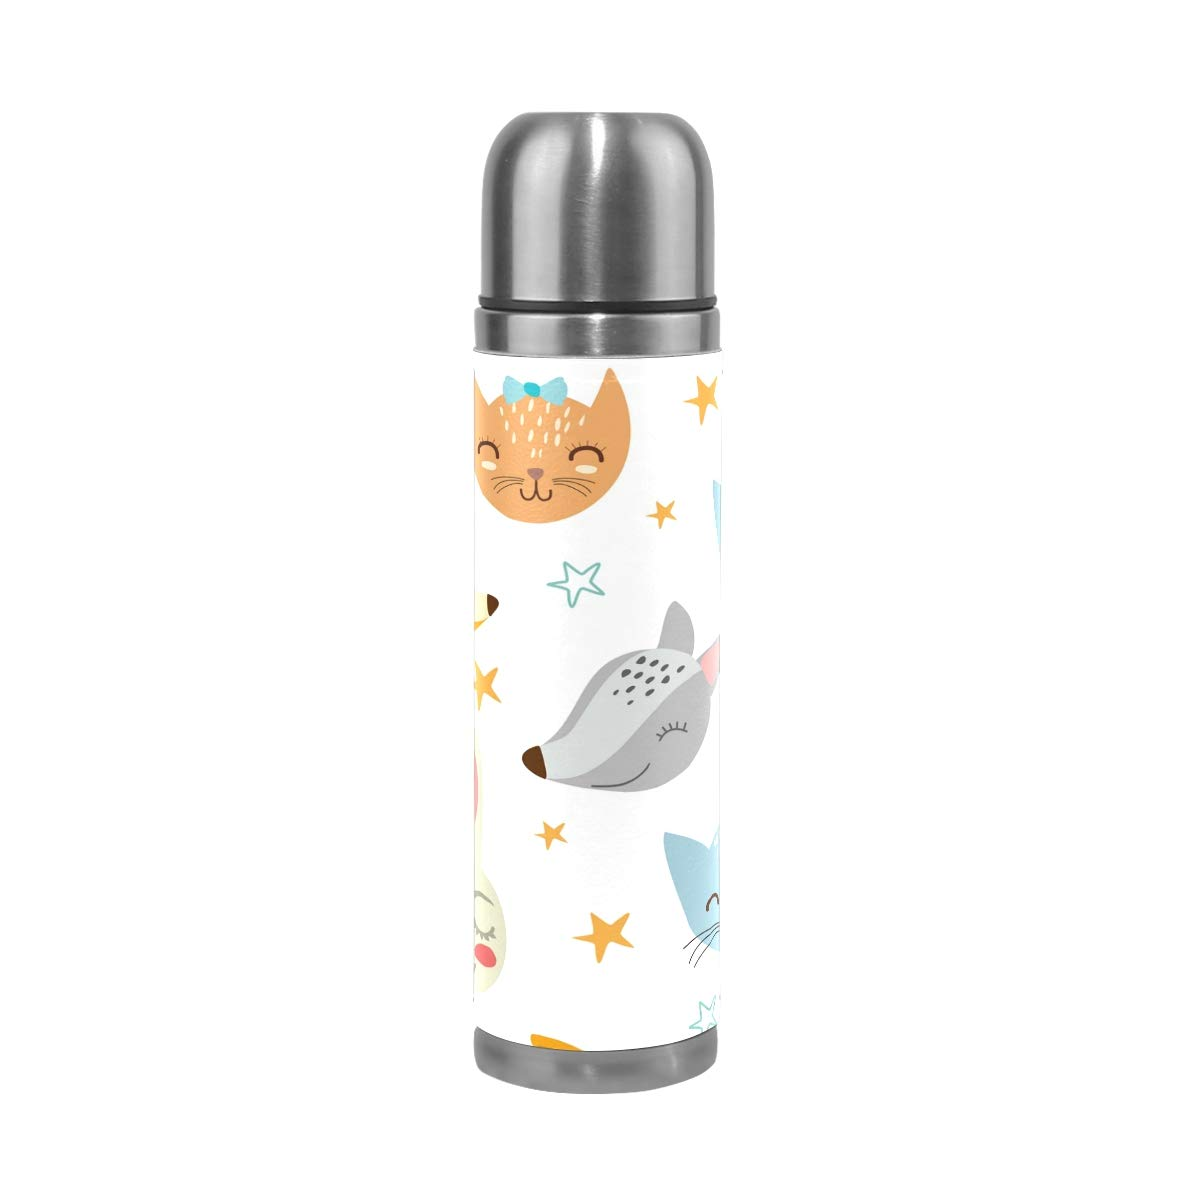 Jojogood Cartoon Animal Stainless Steel Water Bottle Leak-Proof Vacuum Insulated Flask Pot Sport Double Wall PU Leather Travel Thermos Mug for Hot and Cold Drinks Coffee 17 oz